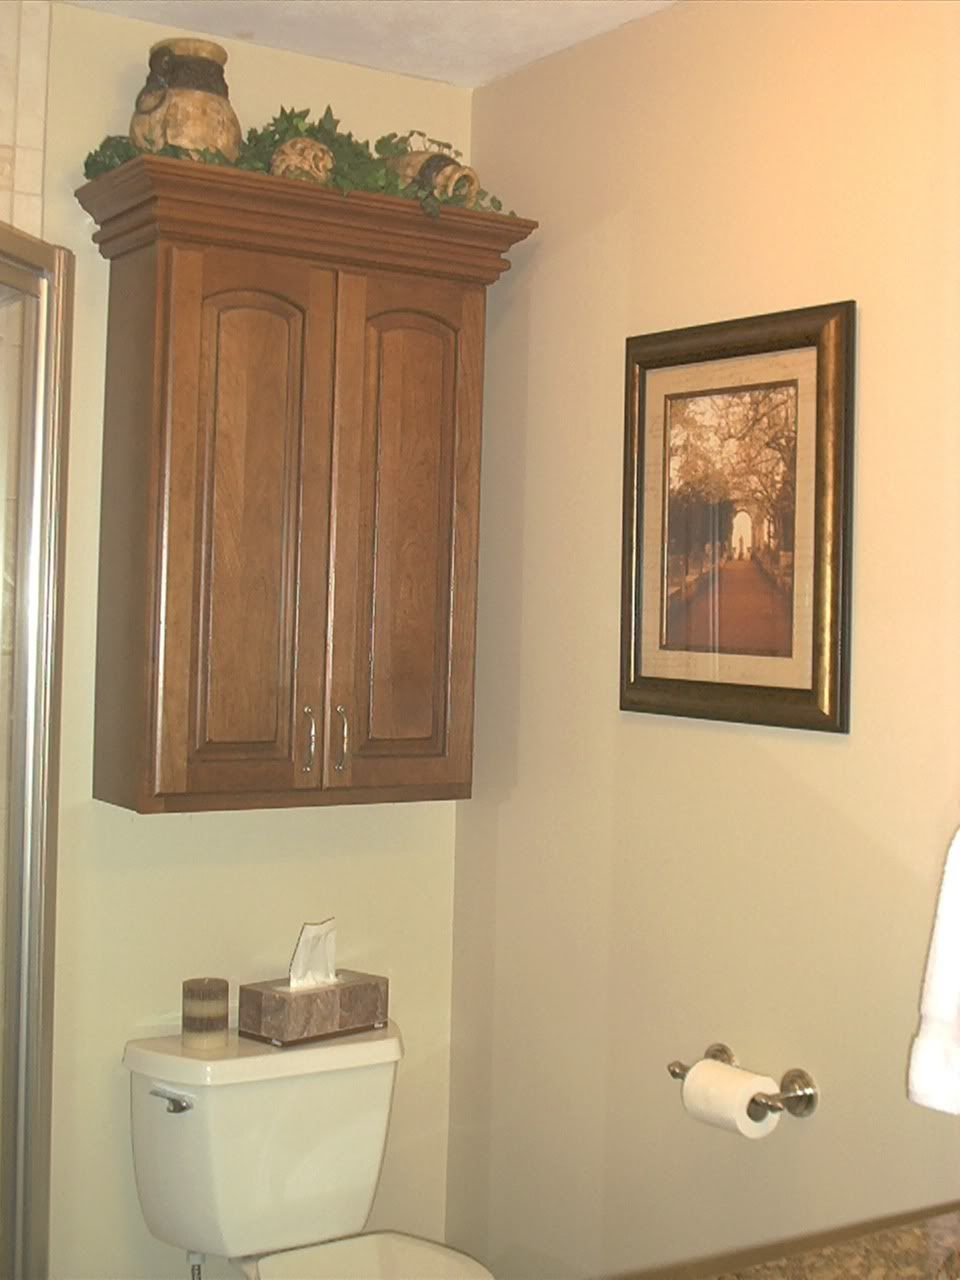 Bathroom Storage Cabinets Over Toilet Wall Cabinet Above Toilet - Best over the toilet storage for small bathroom ideas